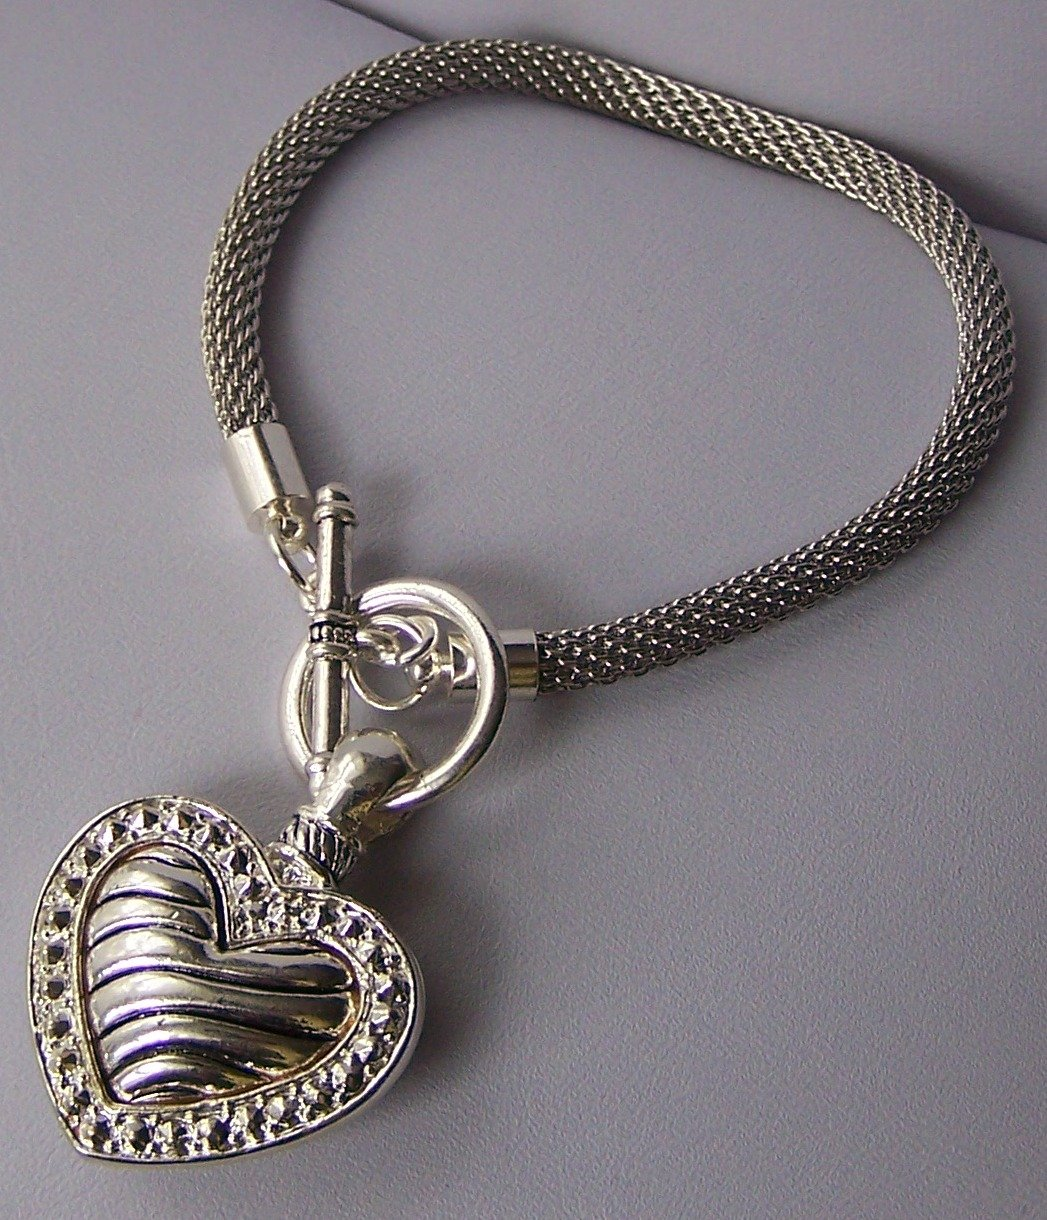 3D Puffy Mesh Silver Tone Heart Love Valentines Day Charm Bracelet